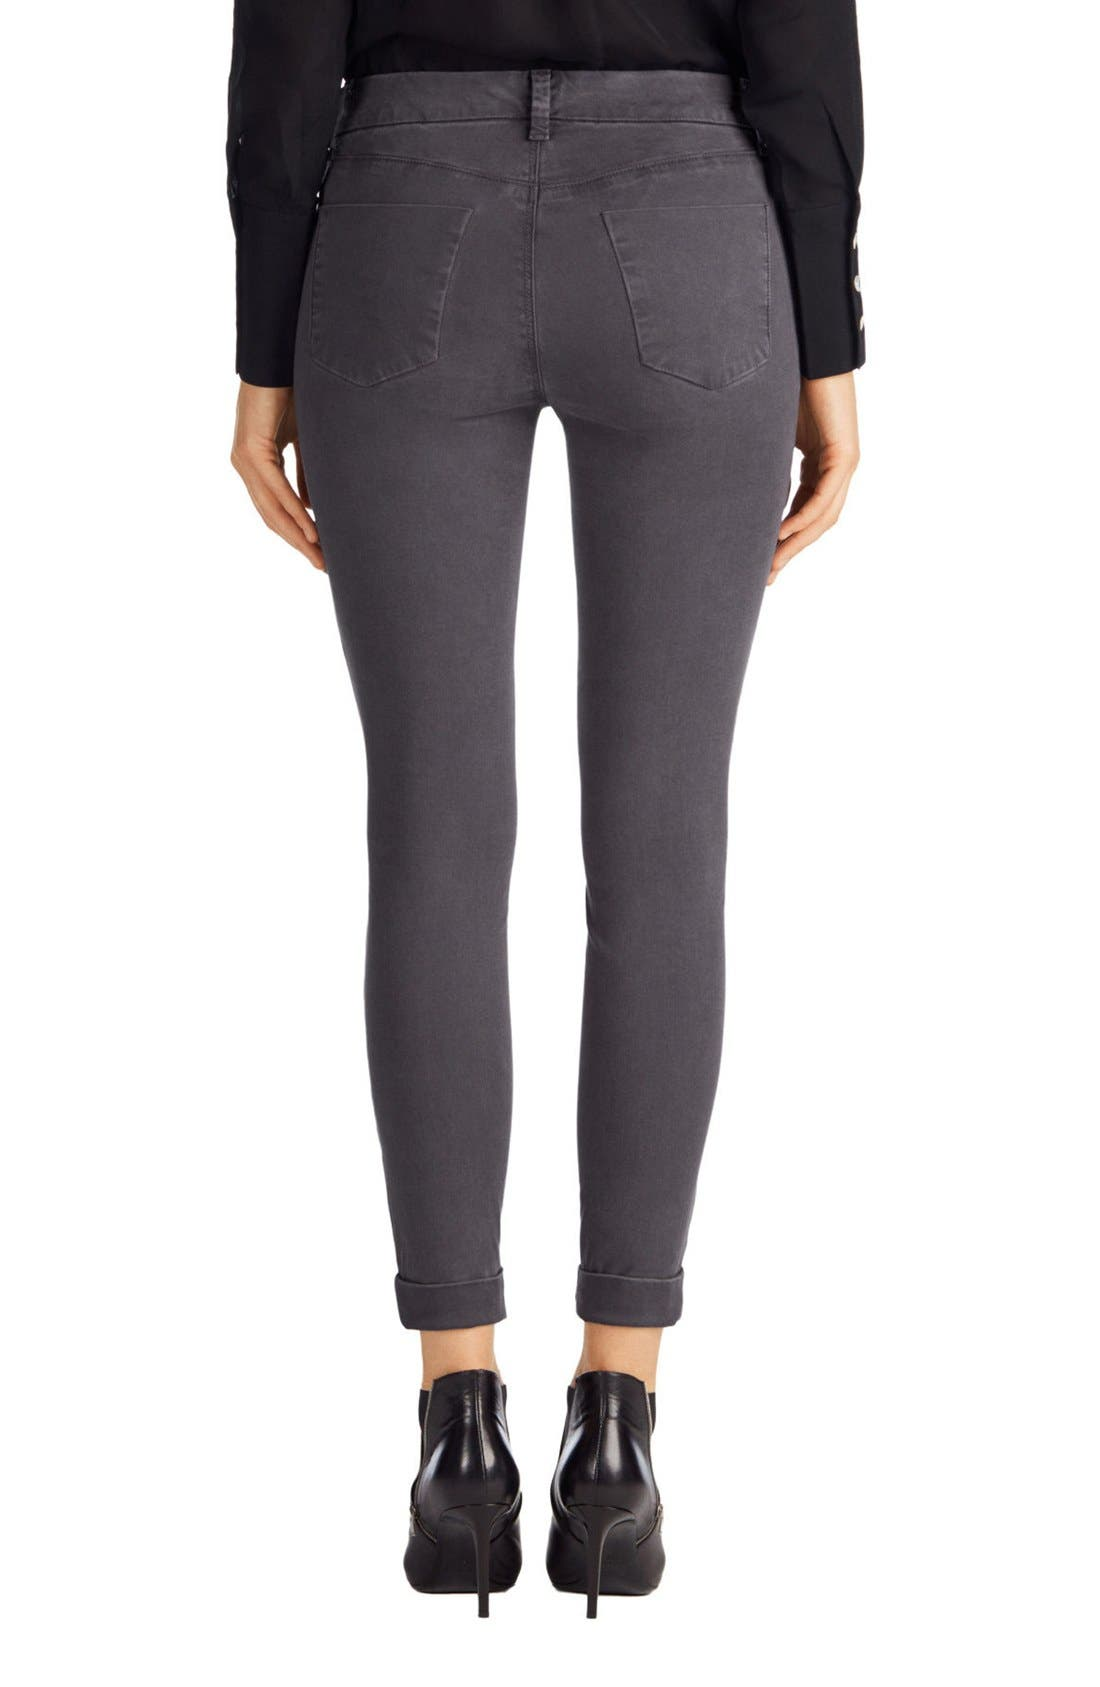 'Anja' Cuffed Crop Skinny Jeans,                             Alternate thumbnail 24, color,